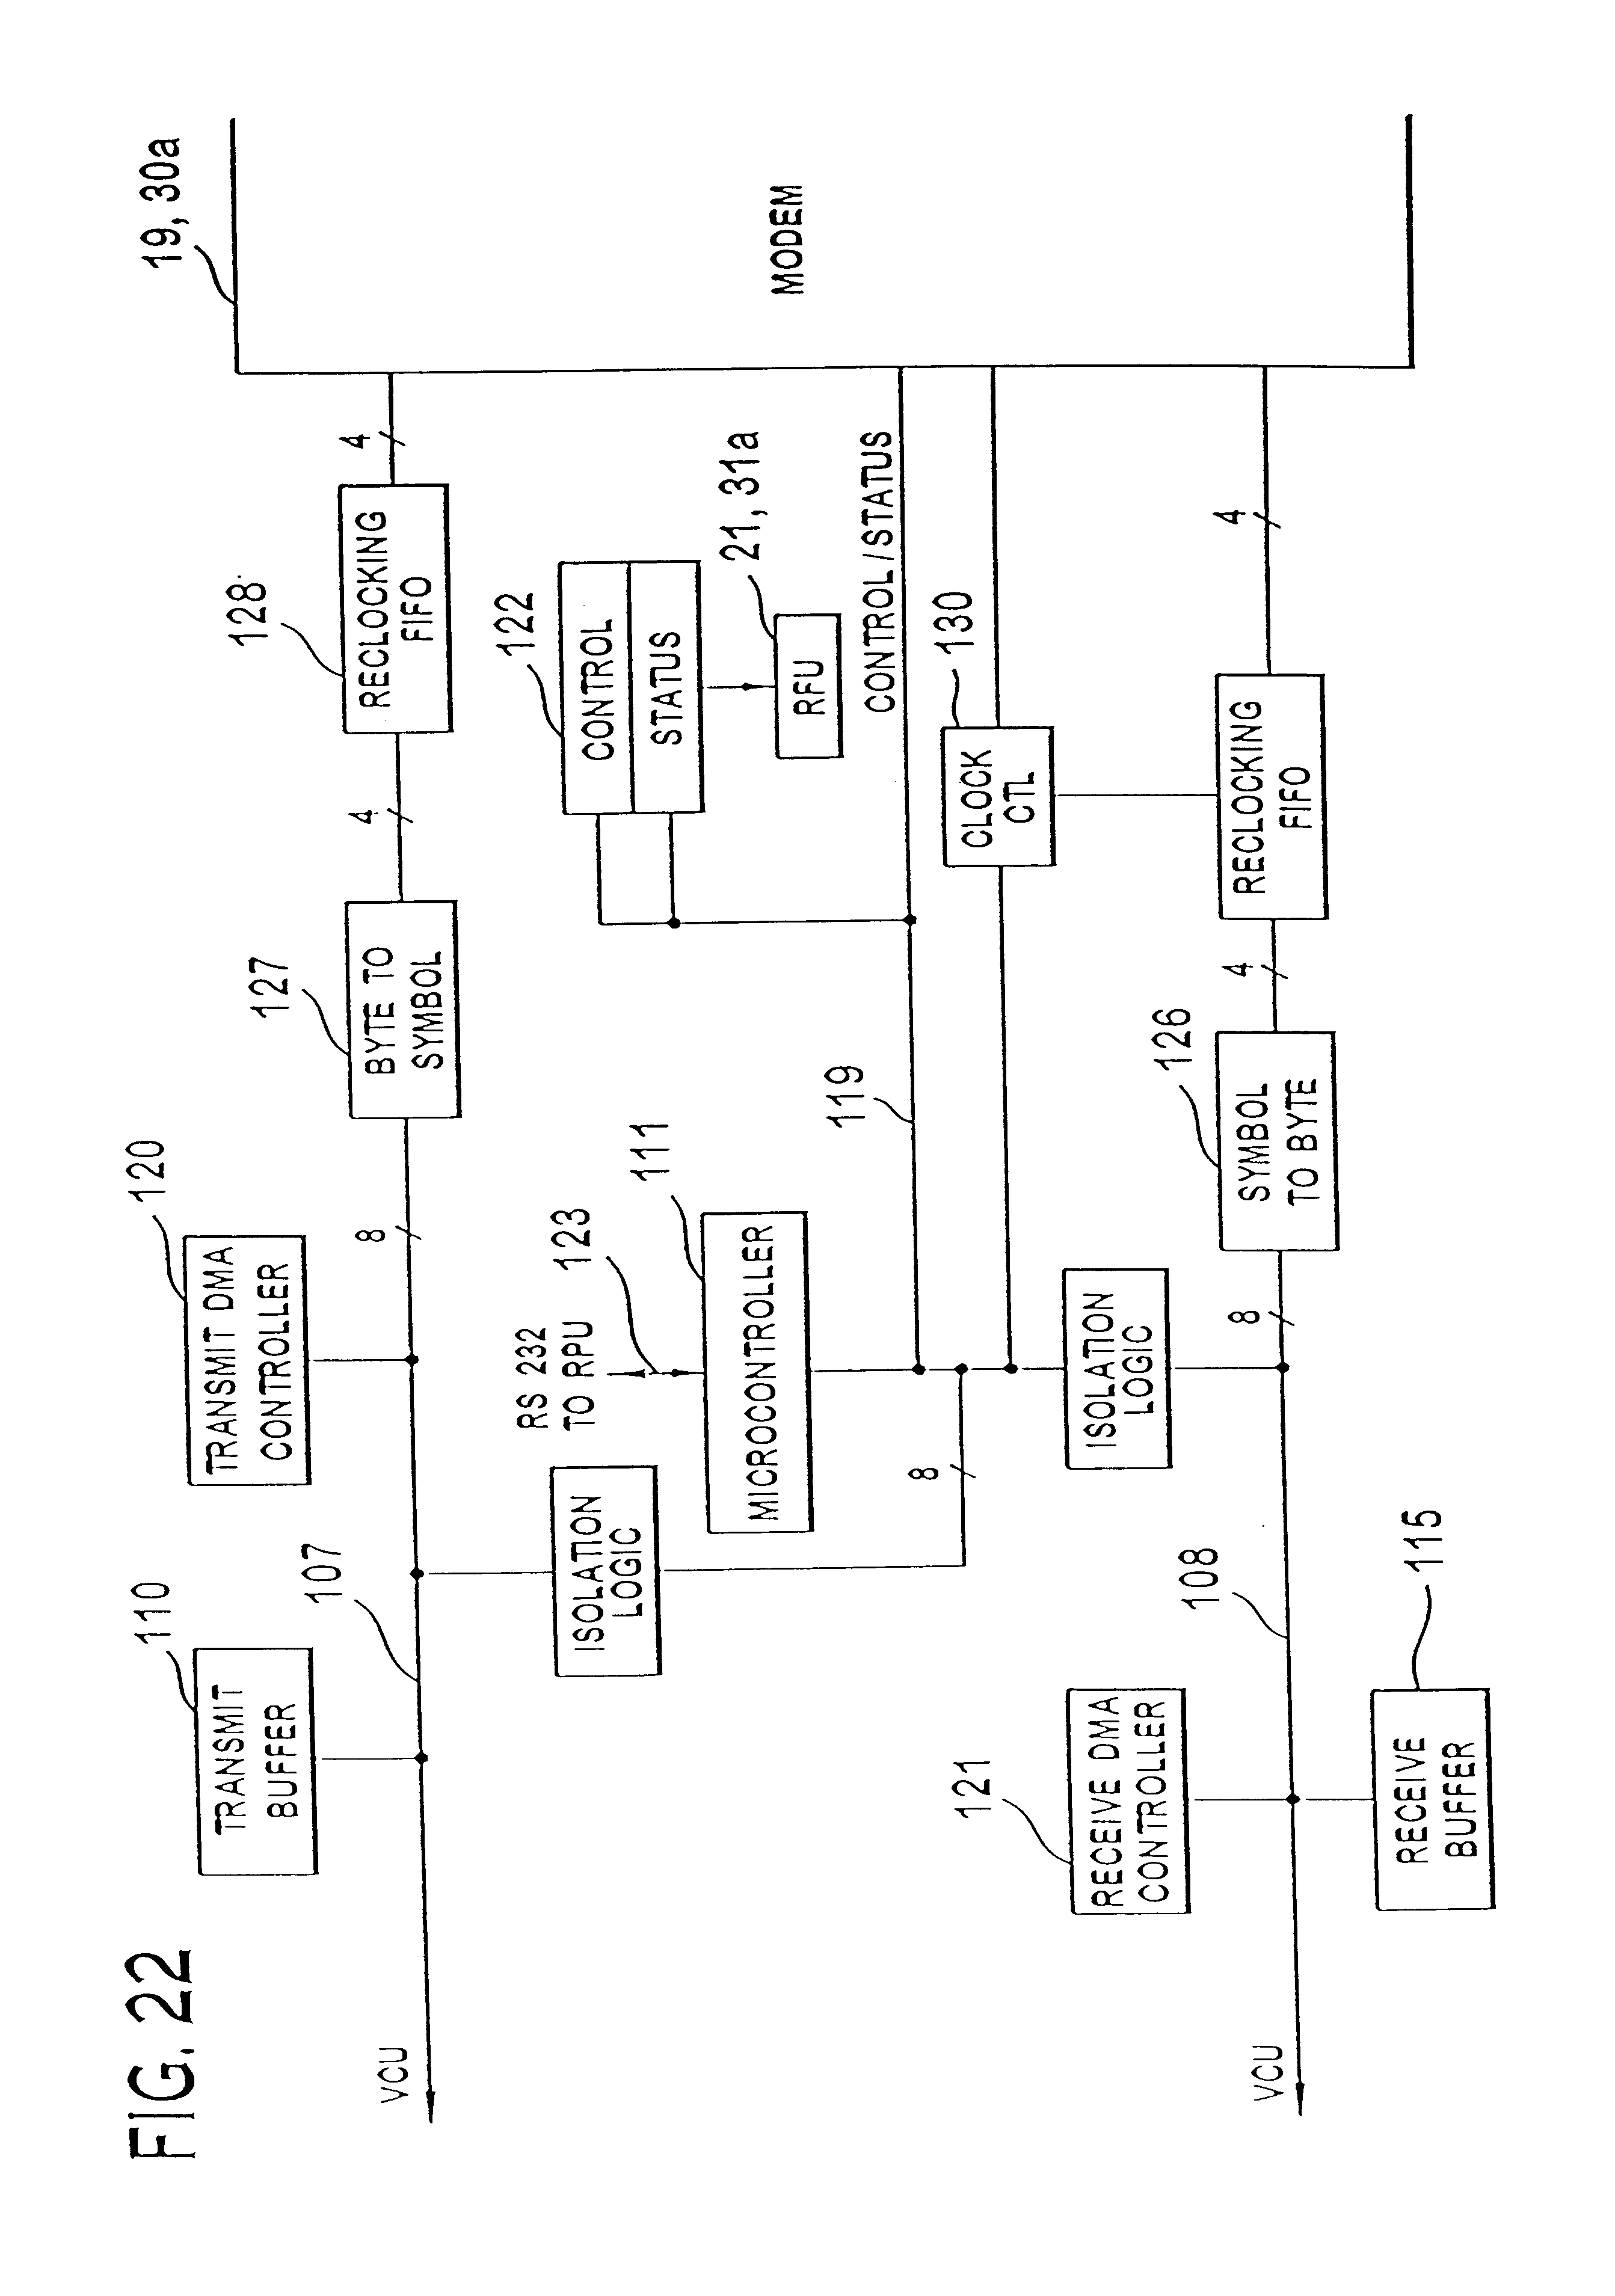 Patent Us6771667 Subscriber Rf Telephone System For Providing 825 Likewise Dcc Track Wiring Diagrams On Model Trains Drawing